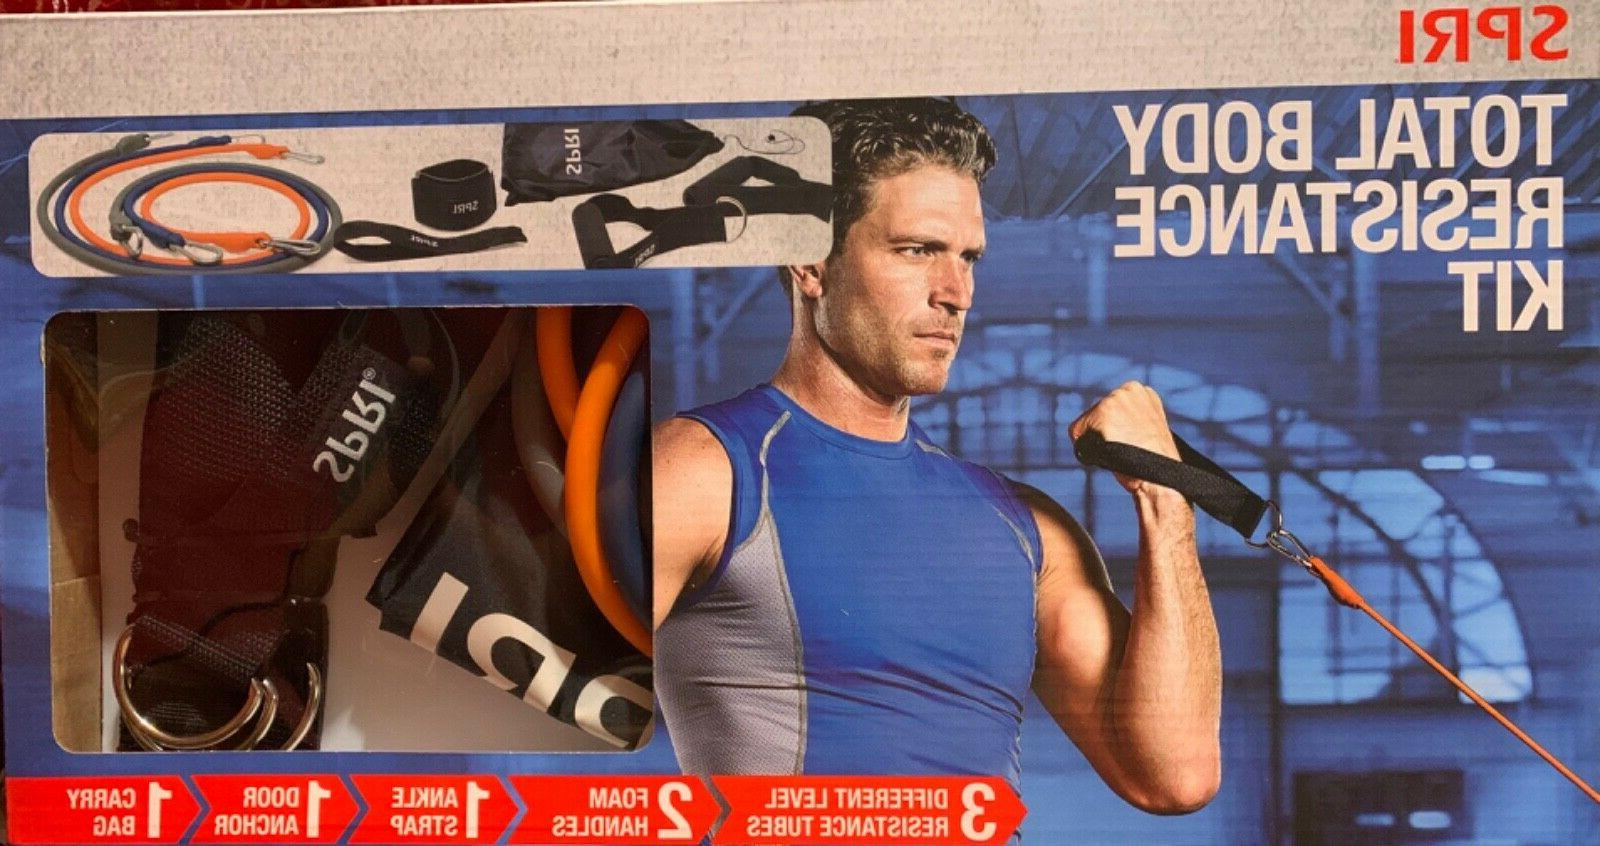 exercise total body resistance band kit fitness